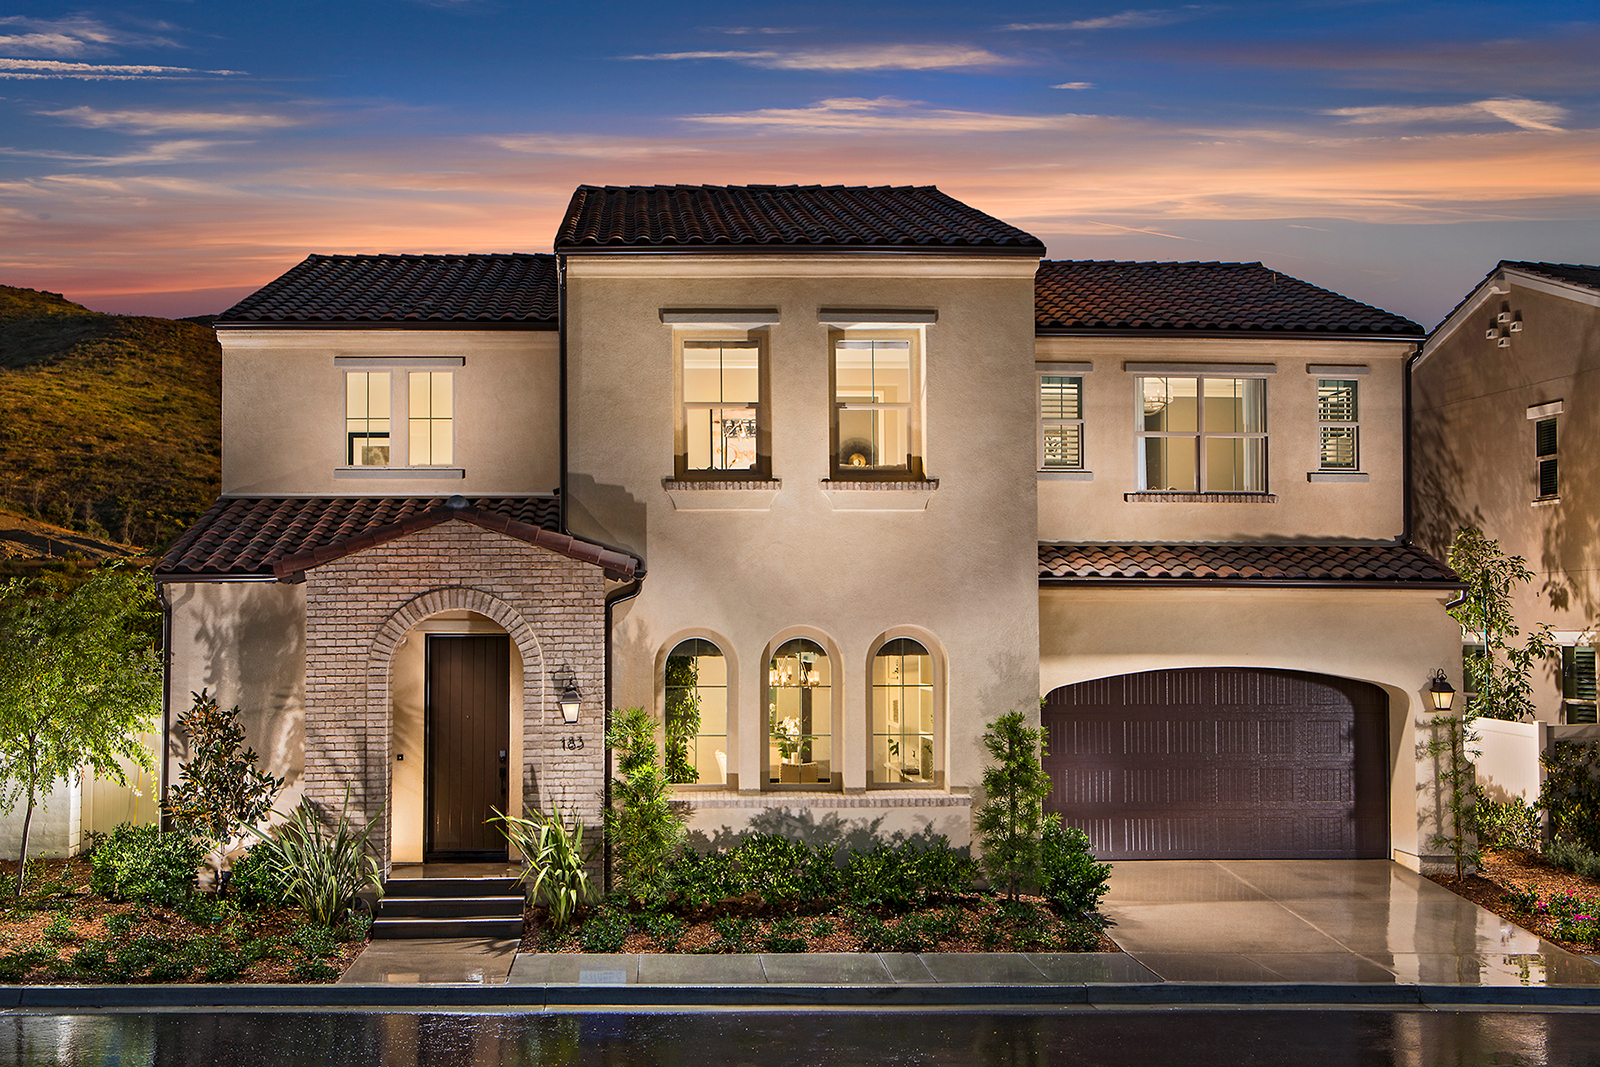 New Homes for Sale in North County San Diego